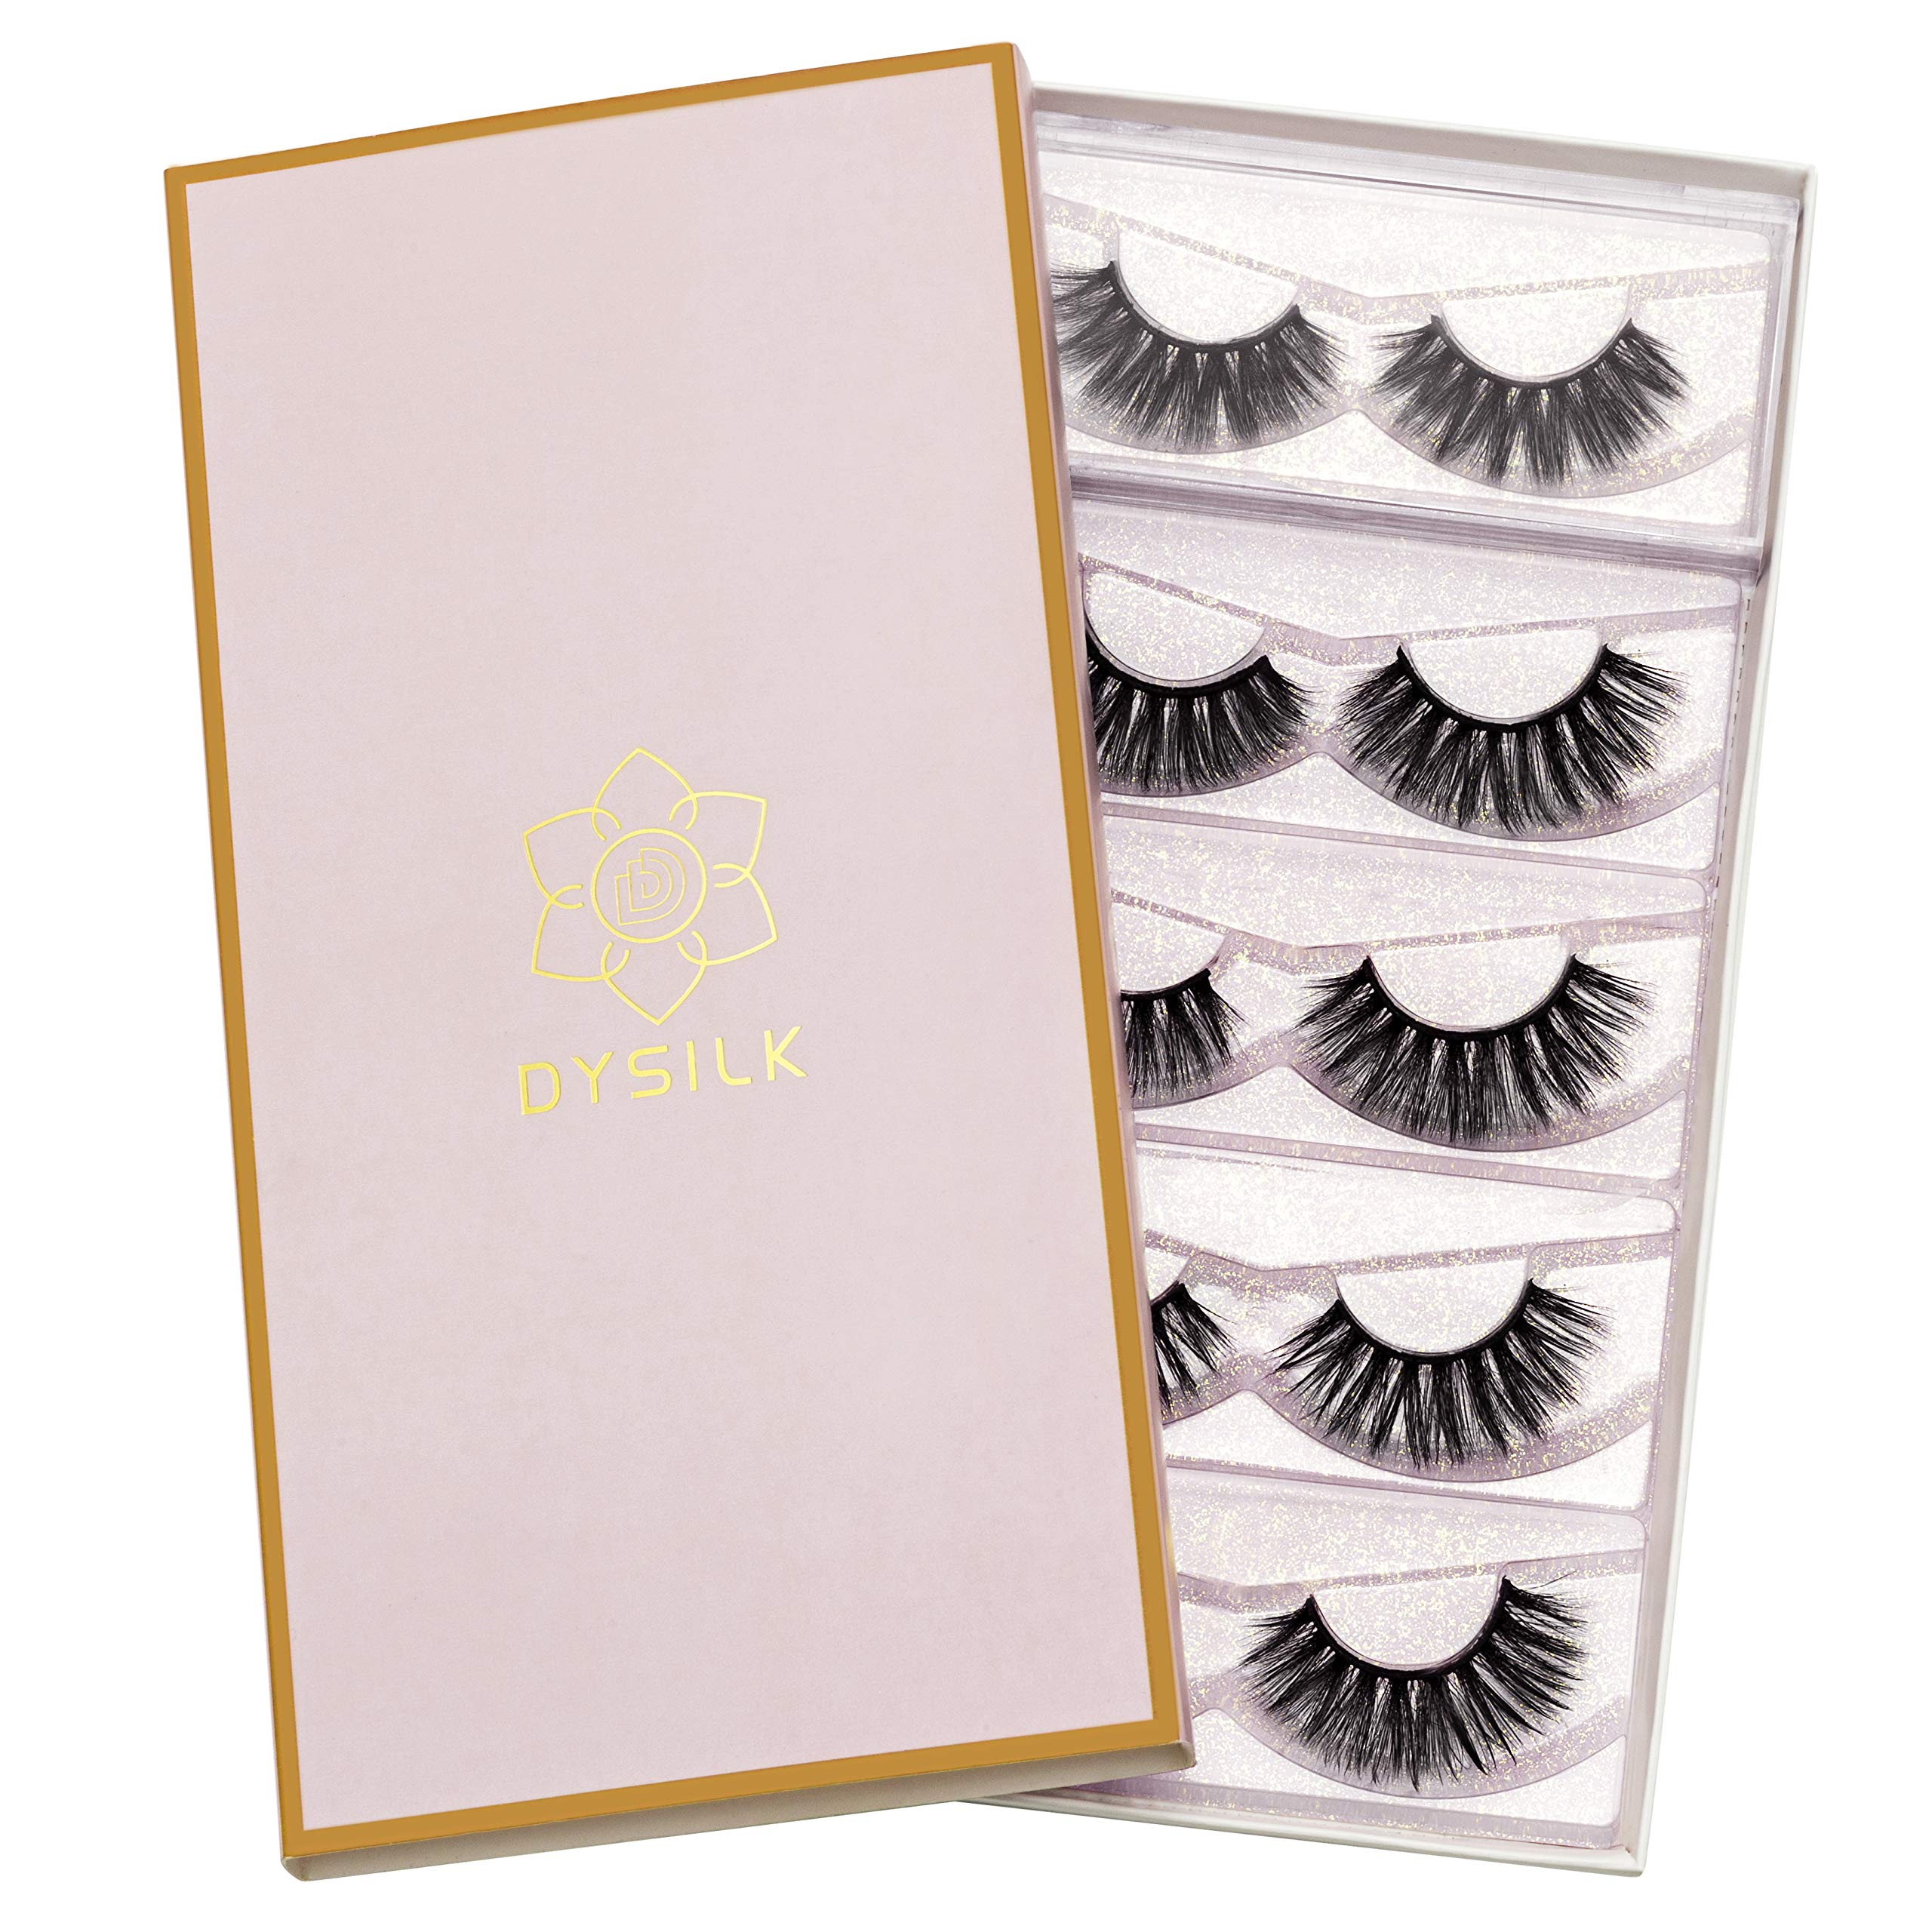 DYSILK 5 Pairs 3D Fake Eyelashes Fluffy False Eyelashes Dramatic Look Eyelashes Handmade Extension Thick Long Reusable Soft Lashes Makeup Black